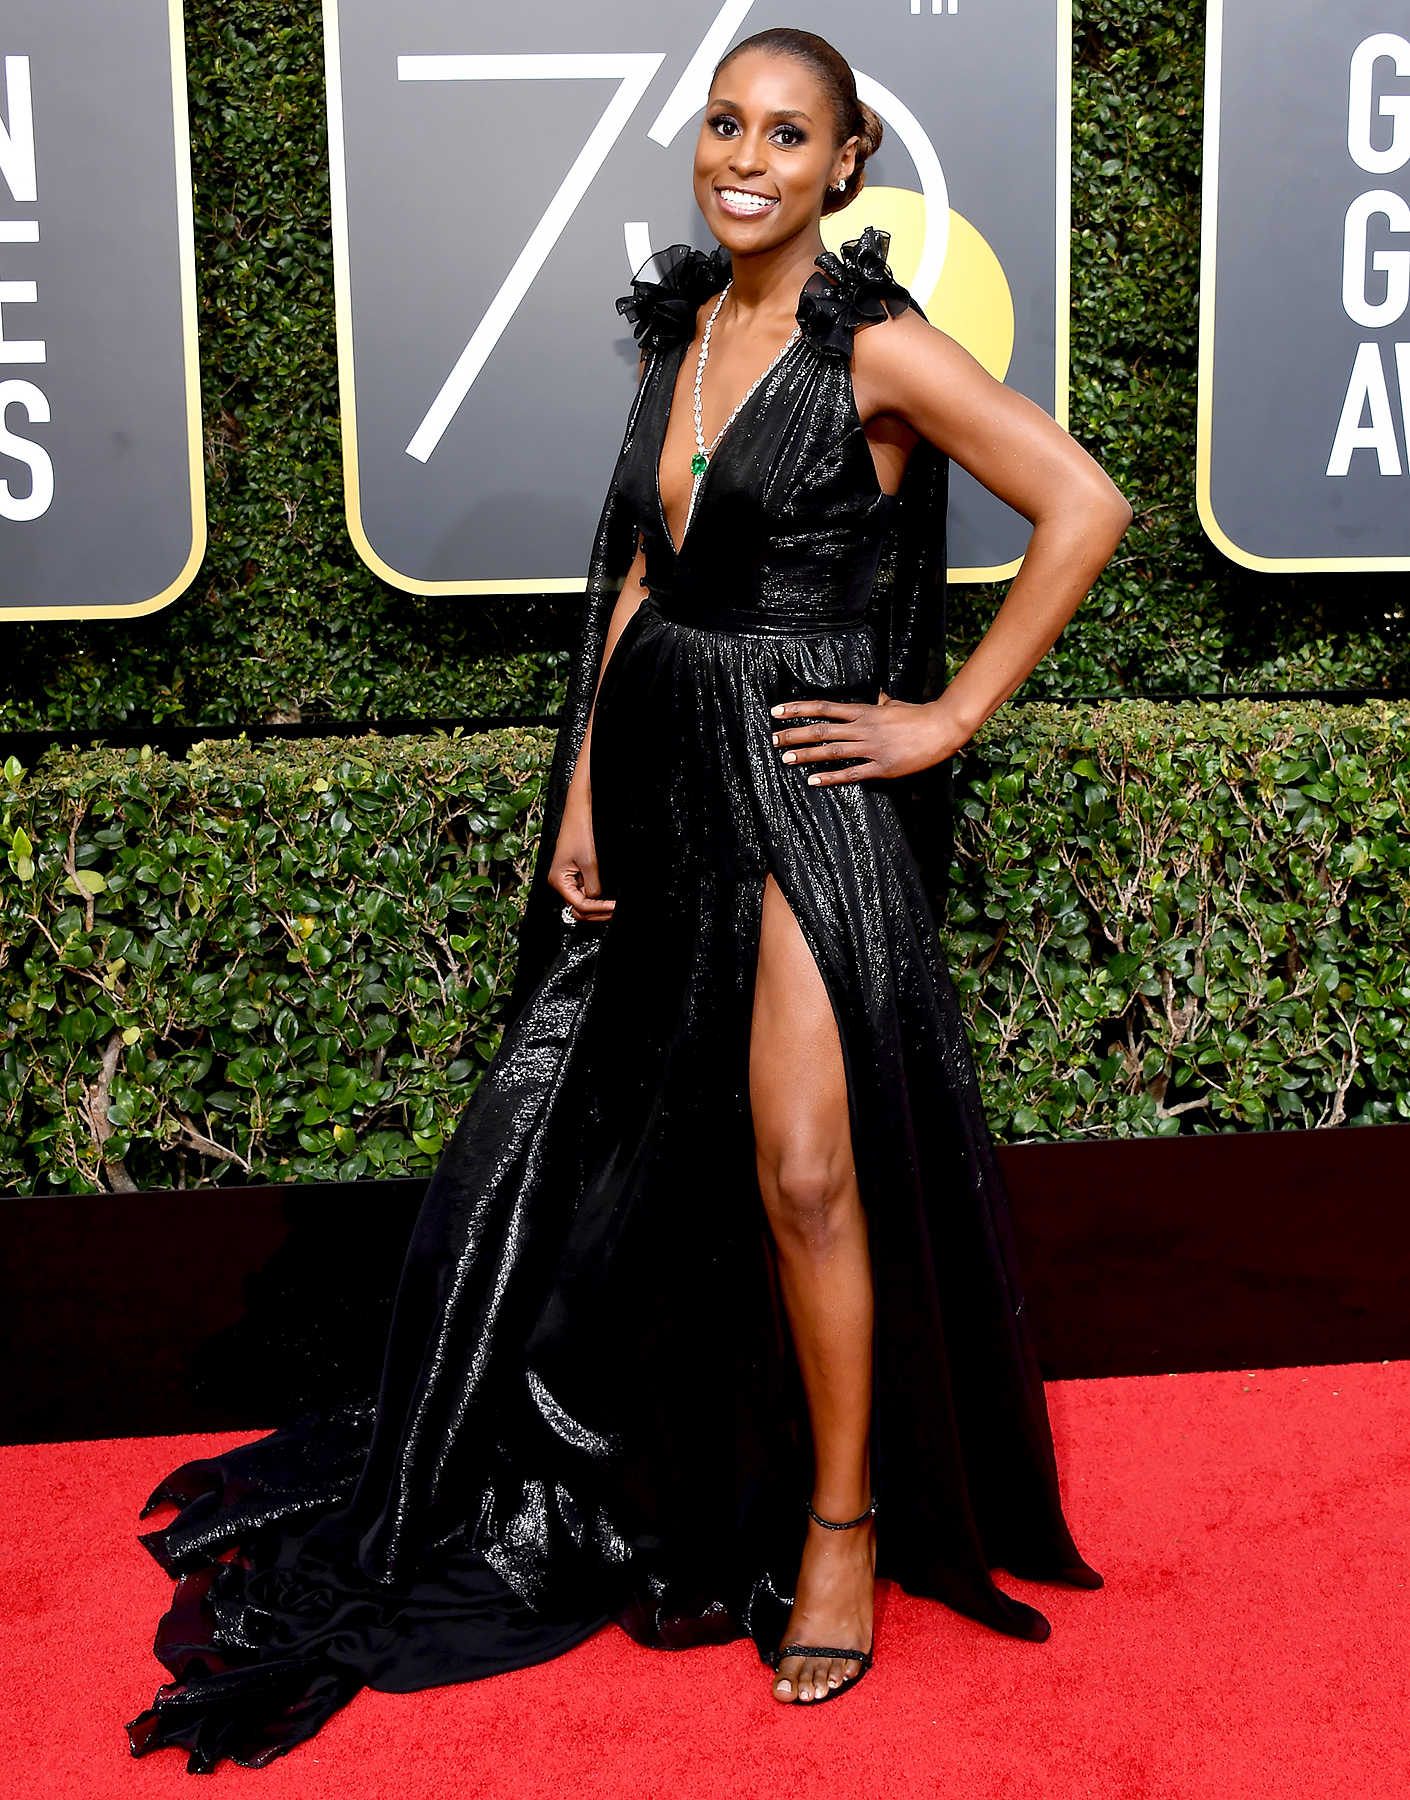 Issa Rae in a slit dress at the 2018 Golden globes